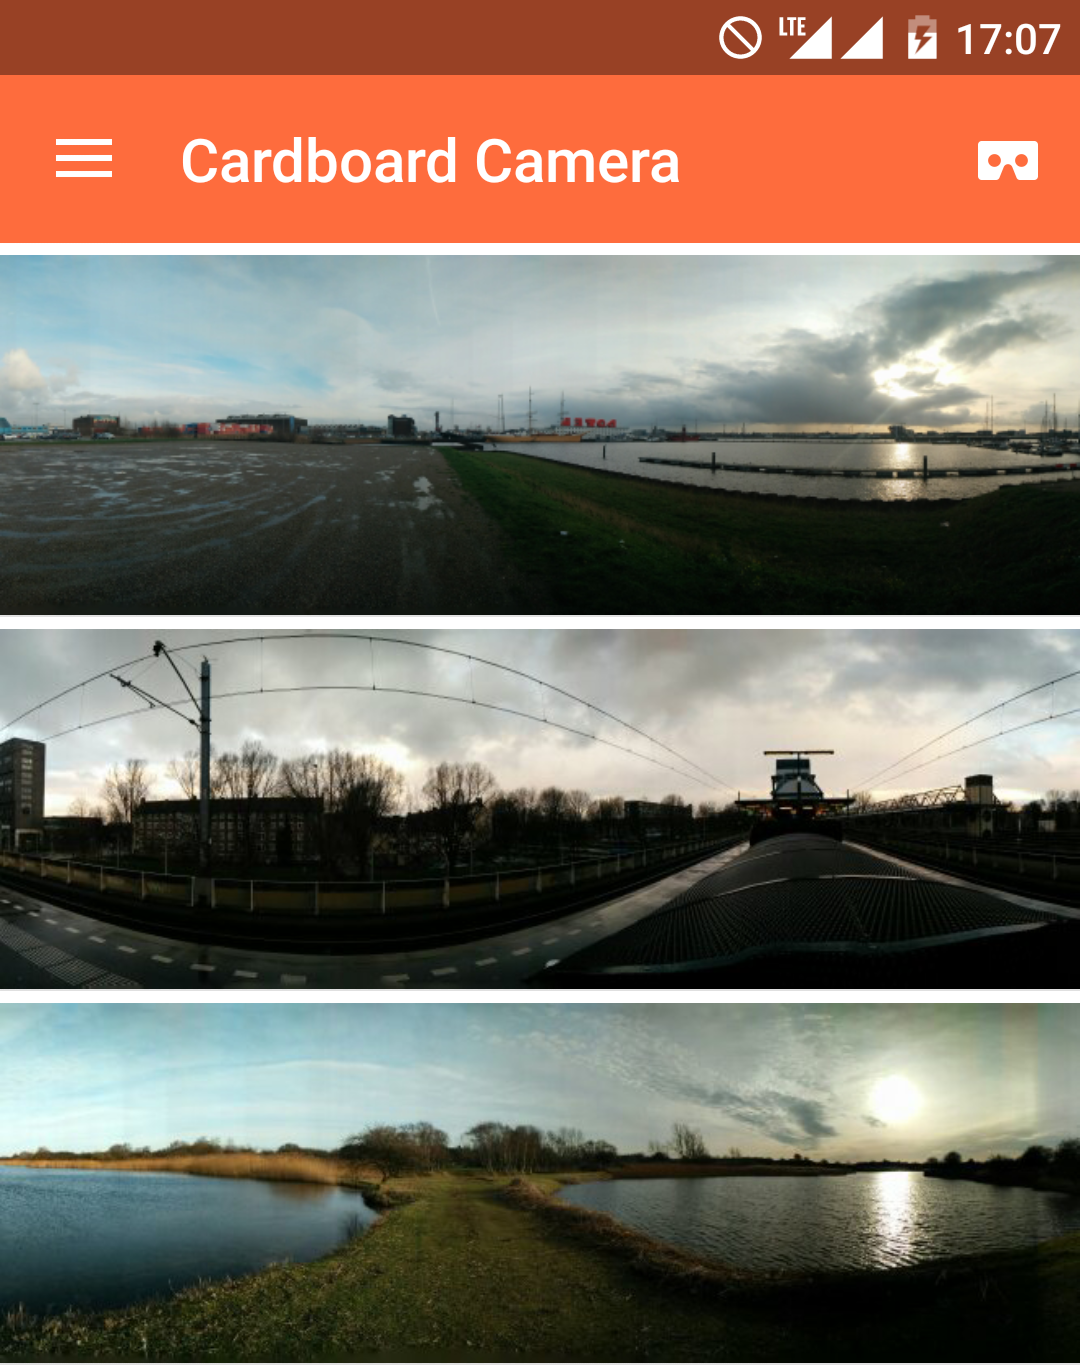 Google Cardboard VR Photo's of unusual places